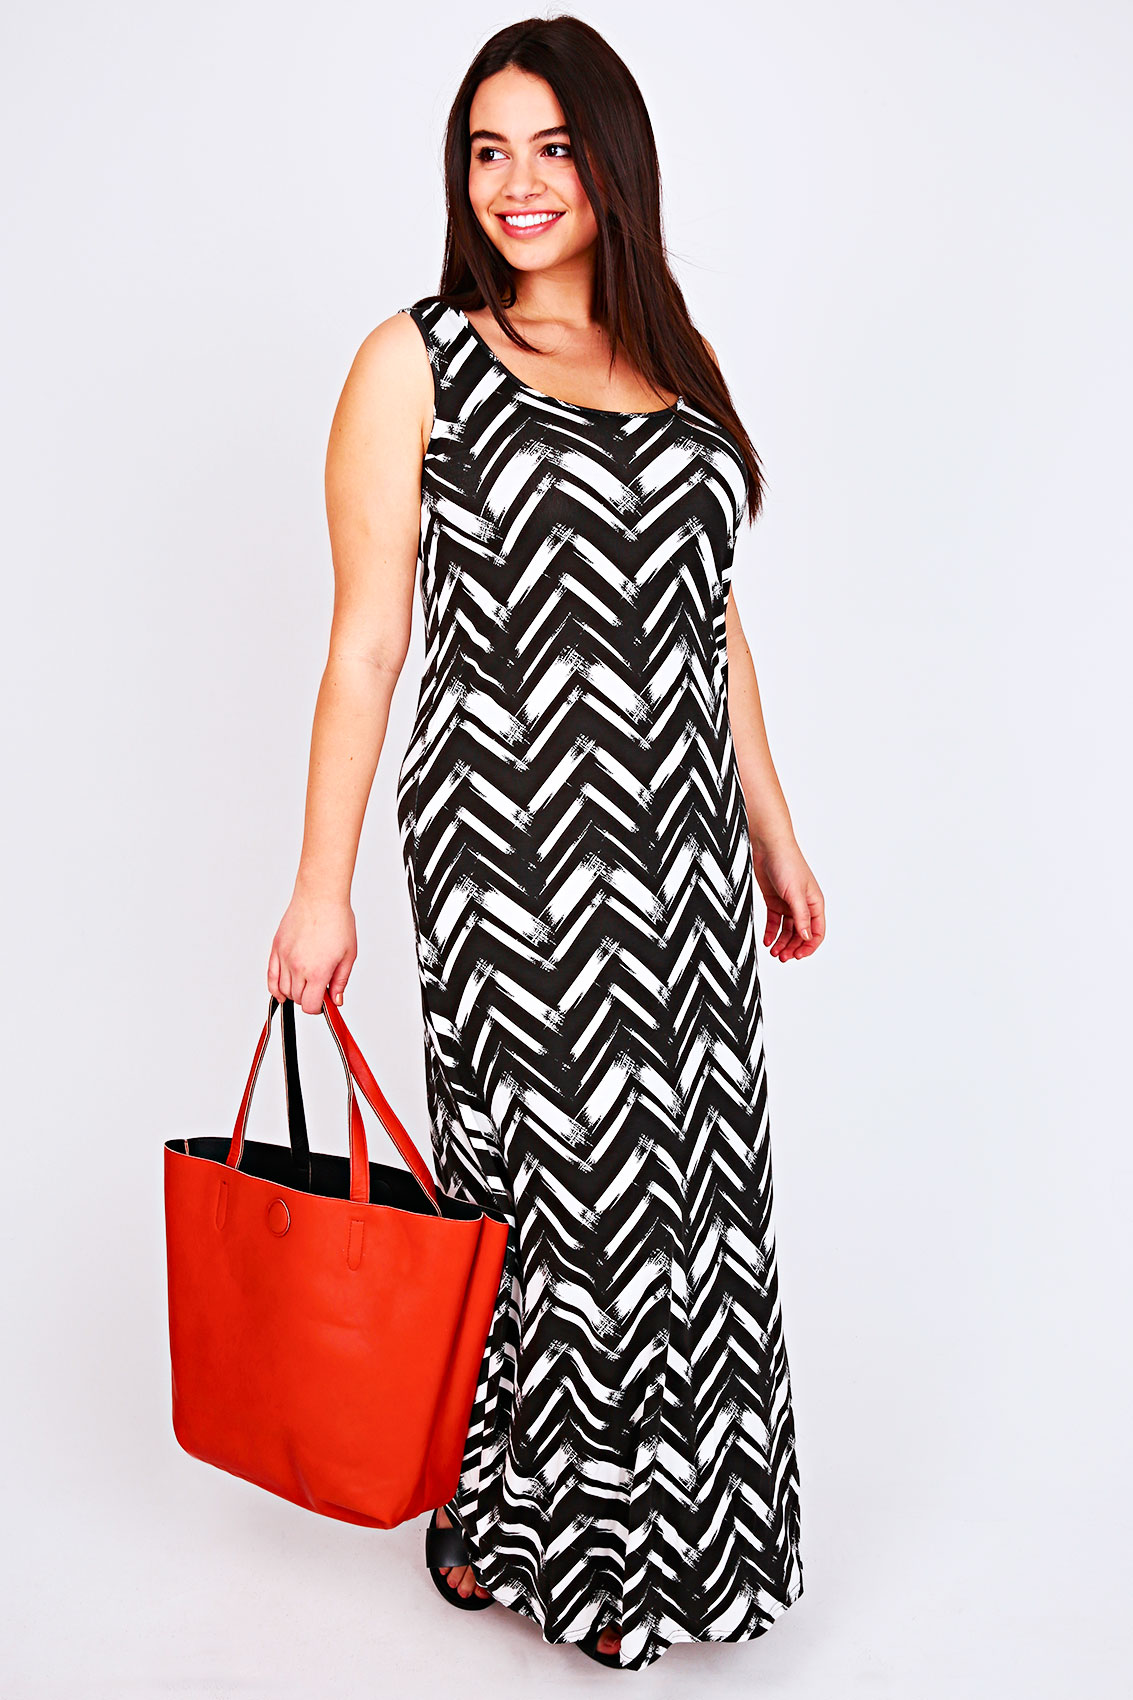 black and white all over chevron print maxi dress plus. Black Bedroom Furniture Sets. Home Design Ideas